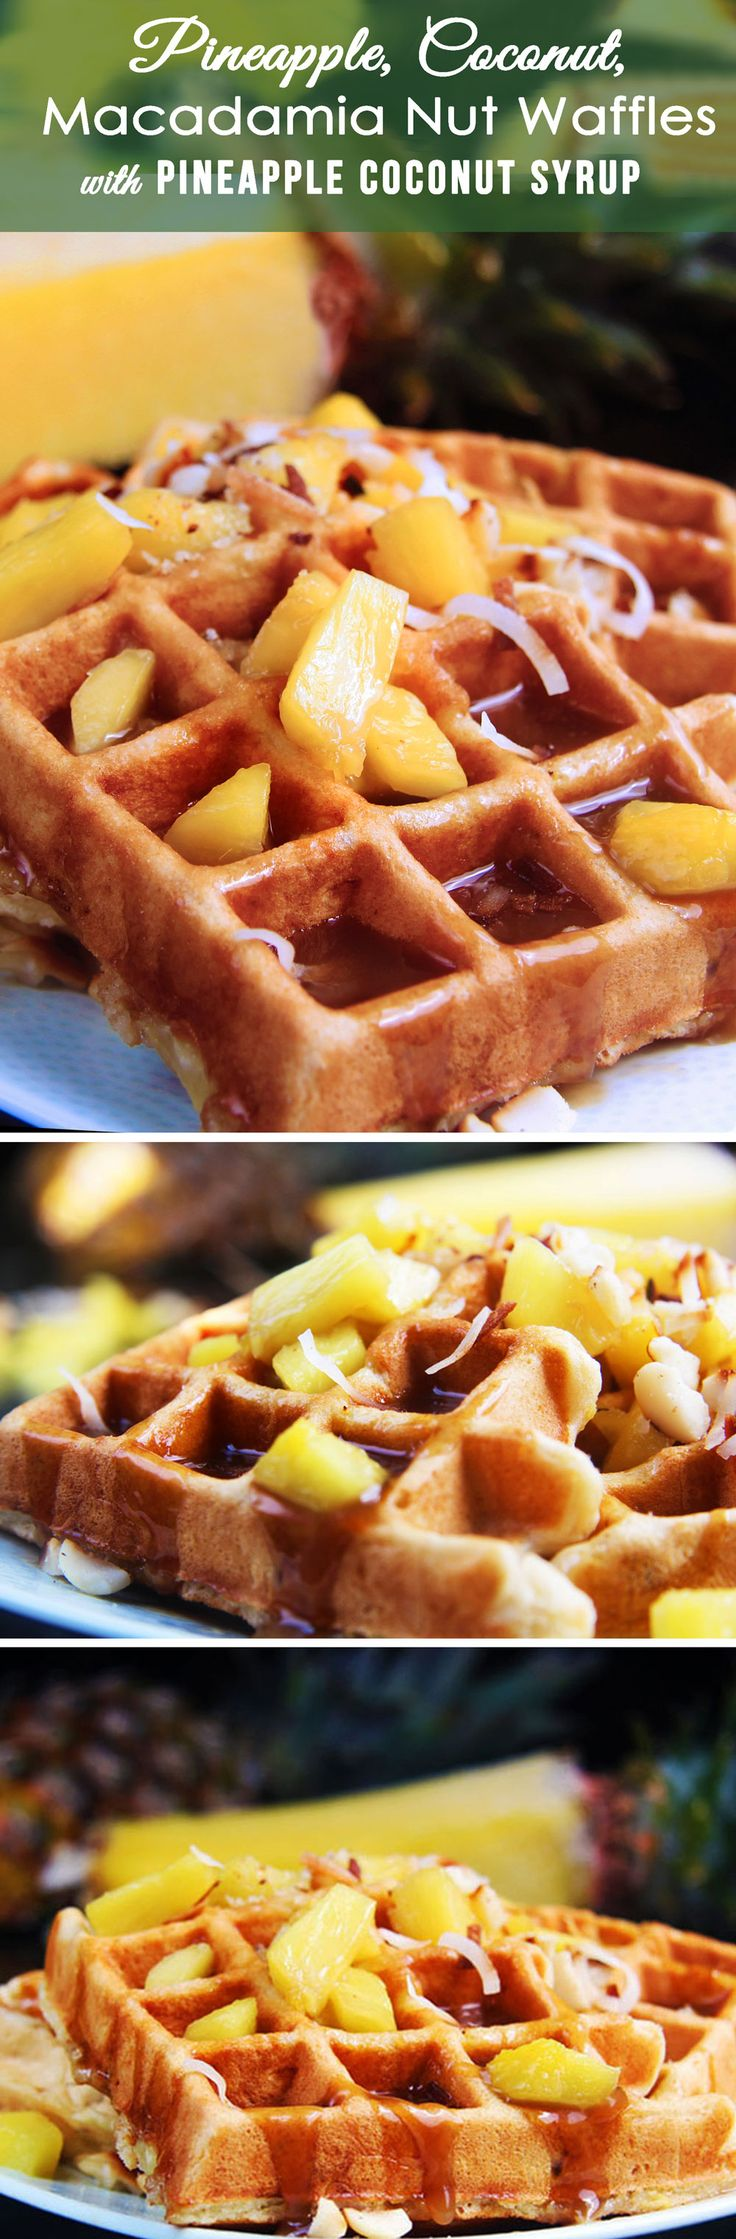 Pineapple, coconut and macadamia nuts sprinkled throughout coconut waffles batter with Pineapple Coconut Syrup - EVERY BIT AS DELICIOUS AS IT SOUNDS!   Carlsbad Cravings